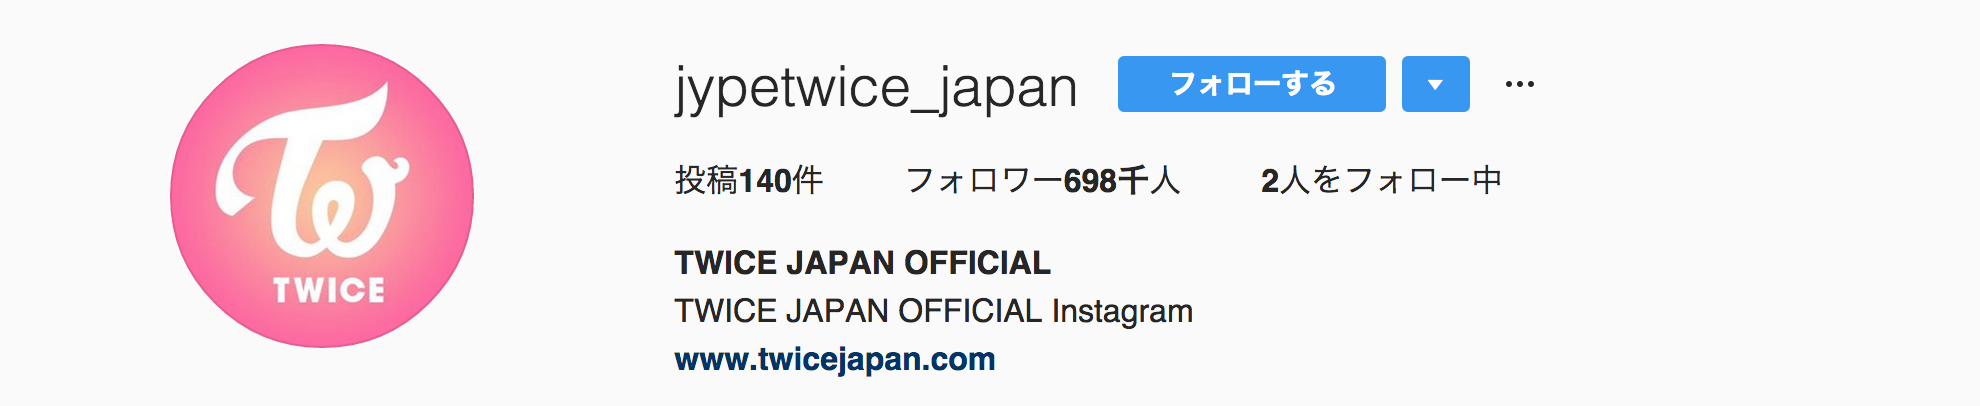 twice-japanofficial-instagram